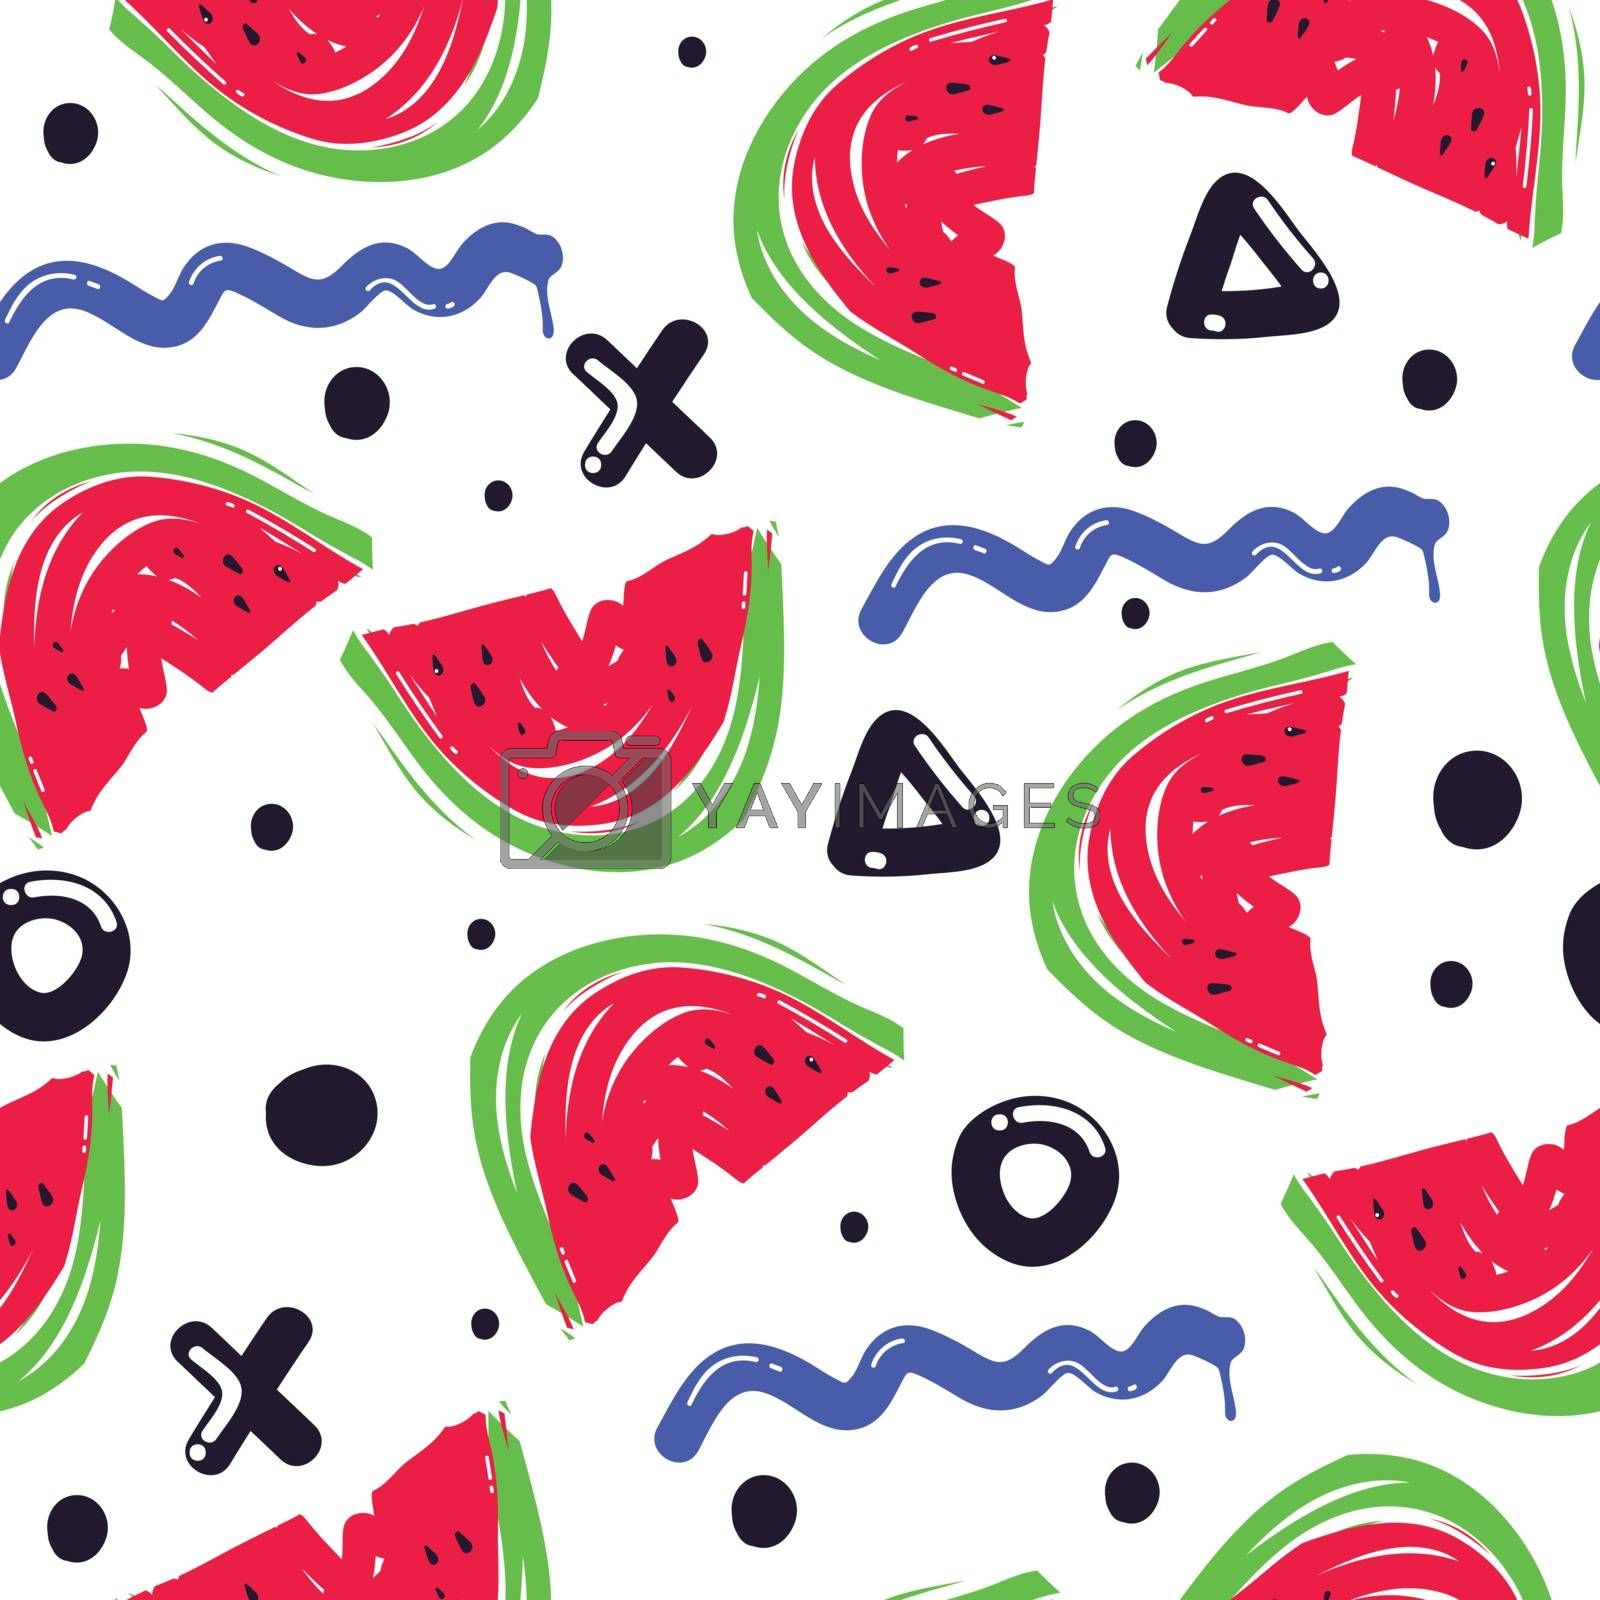 Summer fashion print with watermelons and white. background. Vector seamless pattern